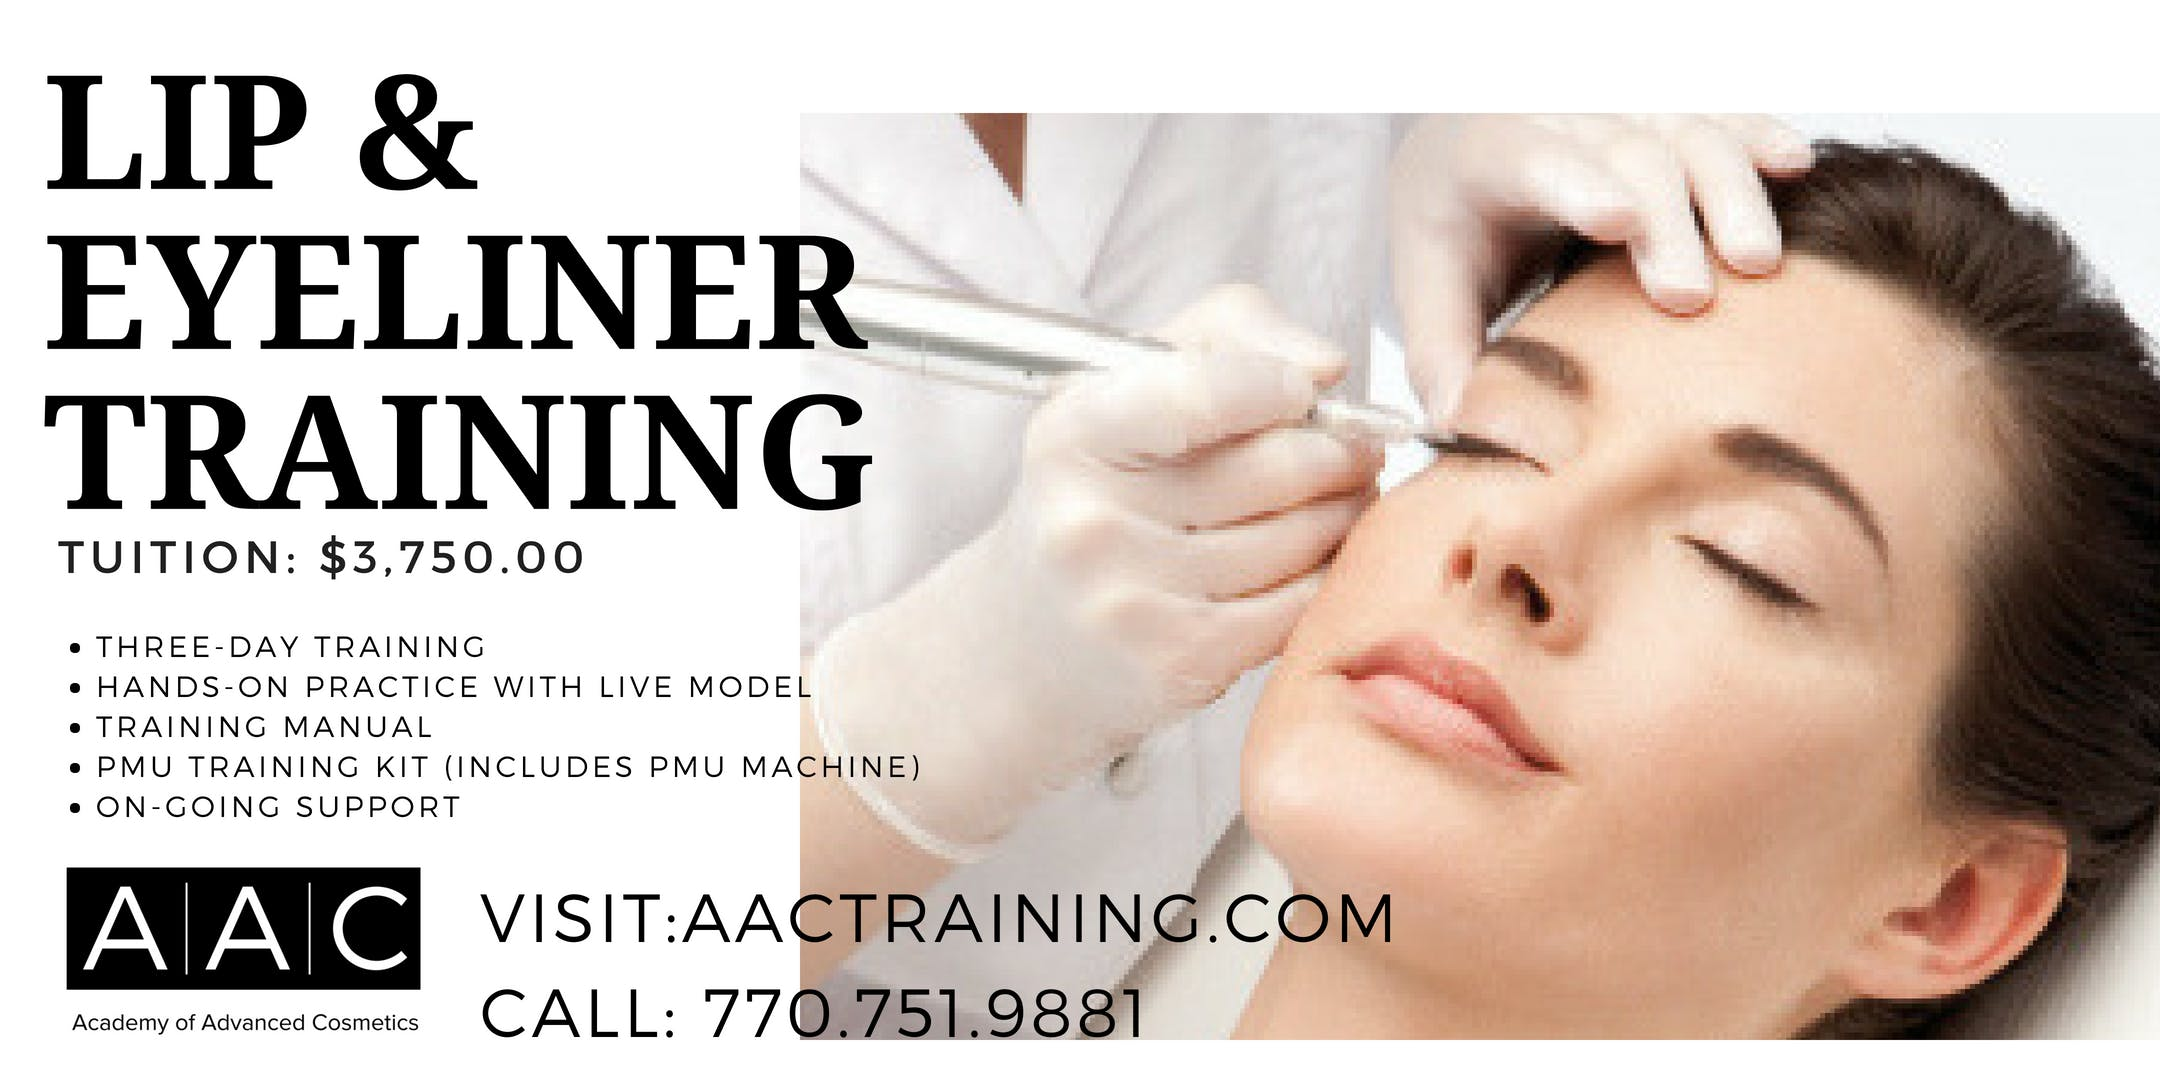 Lip Eyeliner Permanent Makeup Certification Training 16 Jan 2019